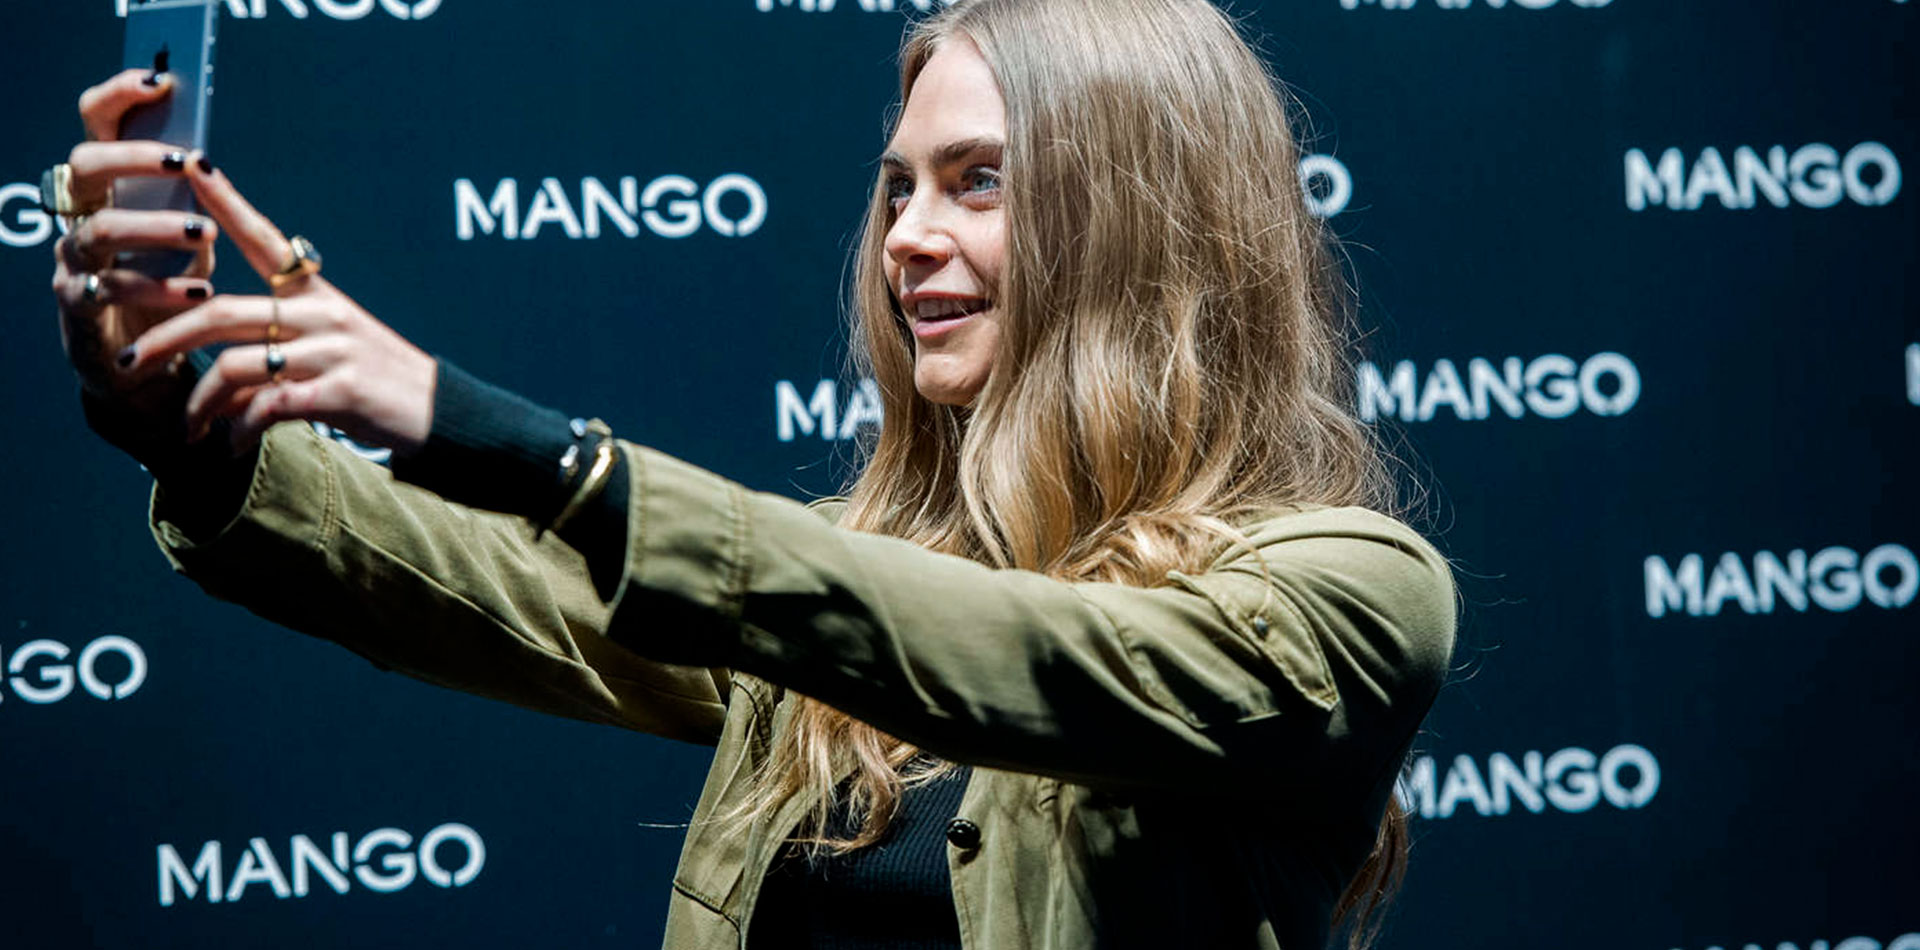 Cara Delevingne taking a picture with Mango's Something in common app